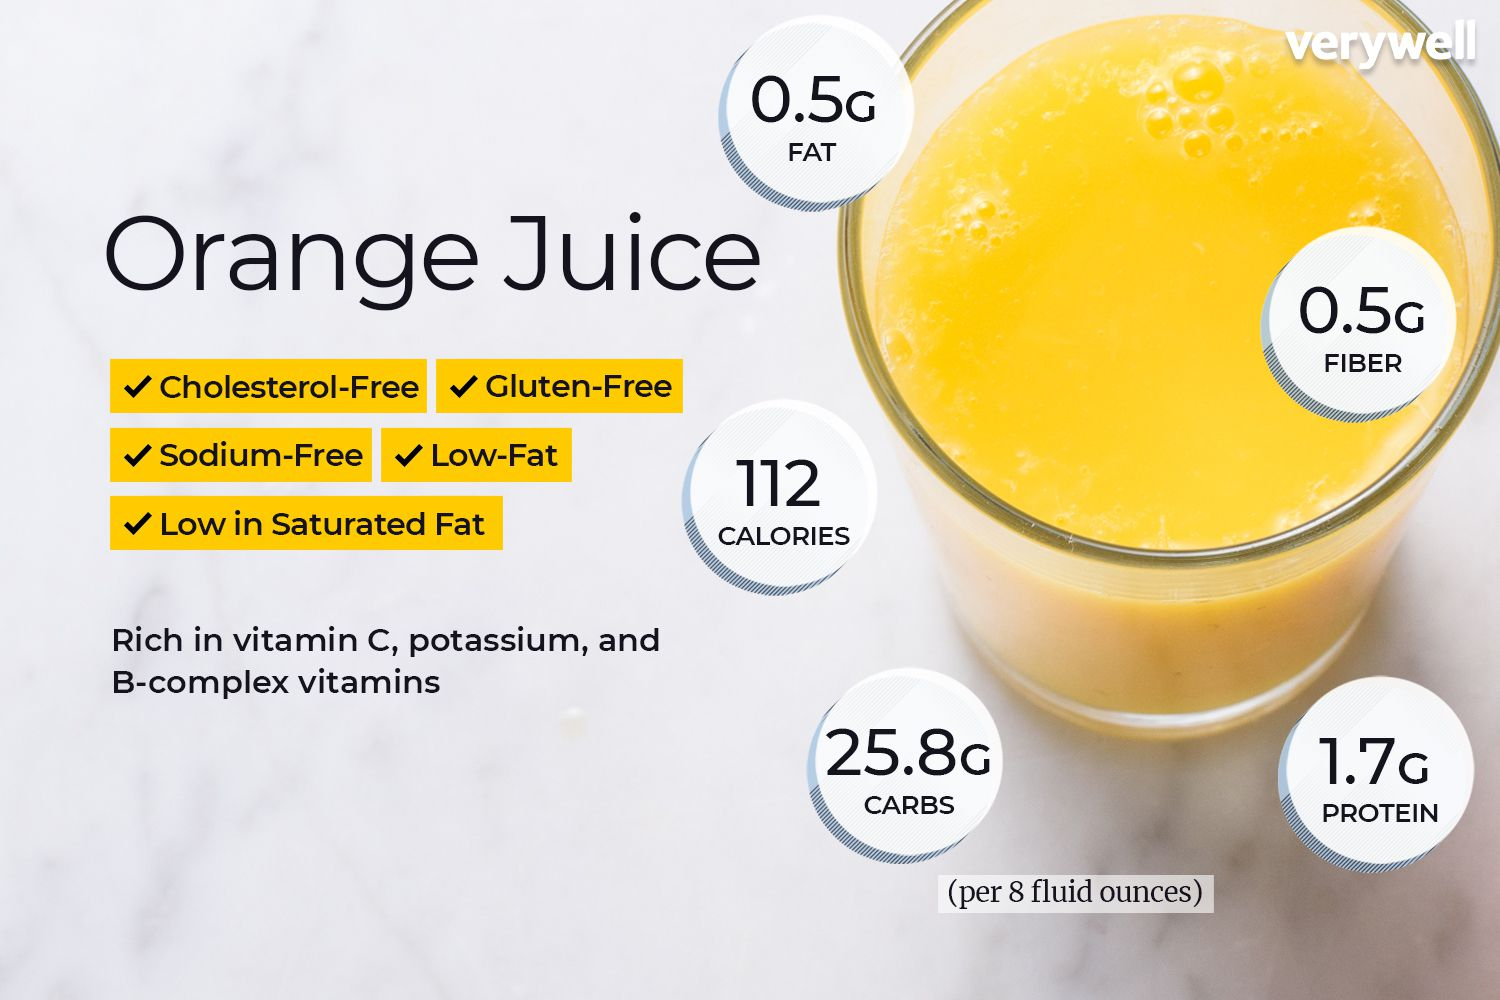 Orange Juice Nutrition Facts: Calories, Carbs, and Health Benefits